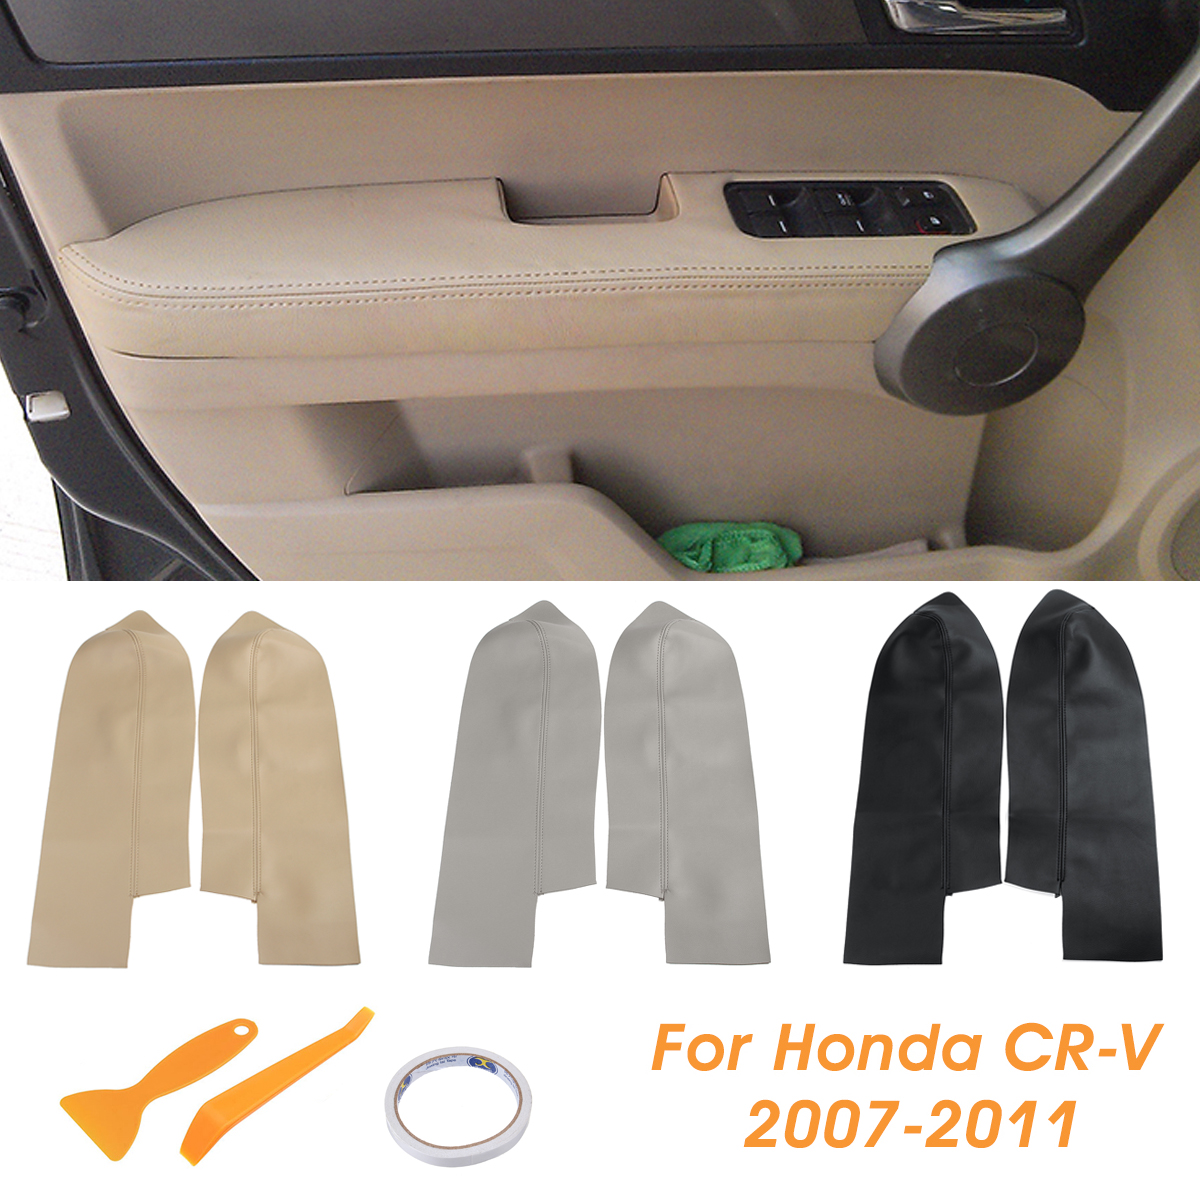 Armrest Covers For Honda CRV 07-11,Pair of Car Front Door Panels Armrest Real Leather Covers Cotton-Material Grey